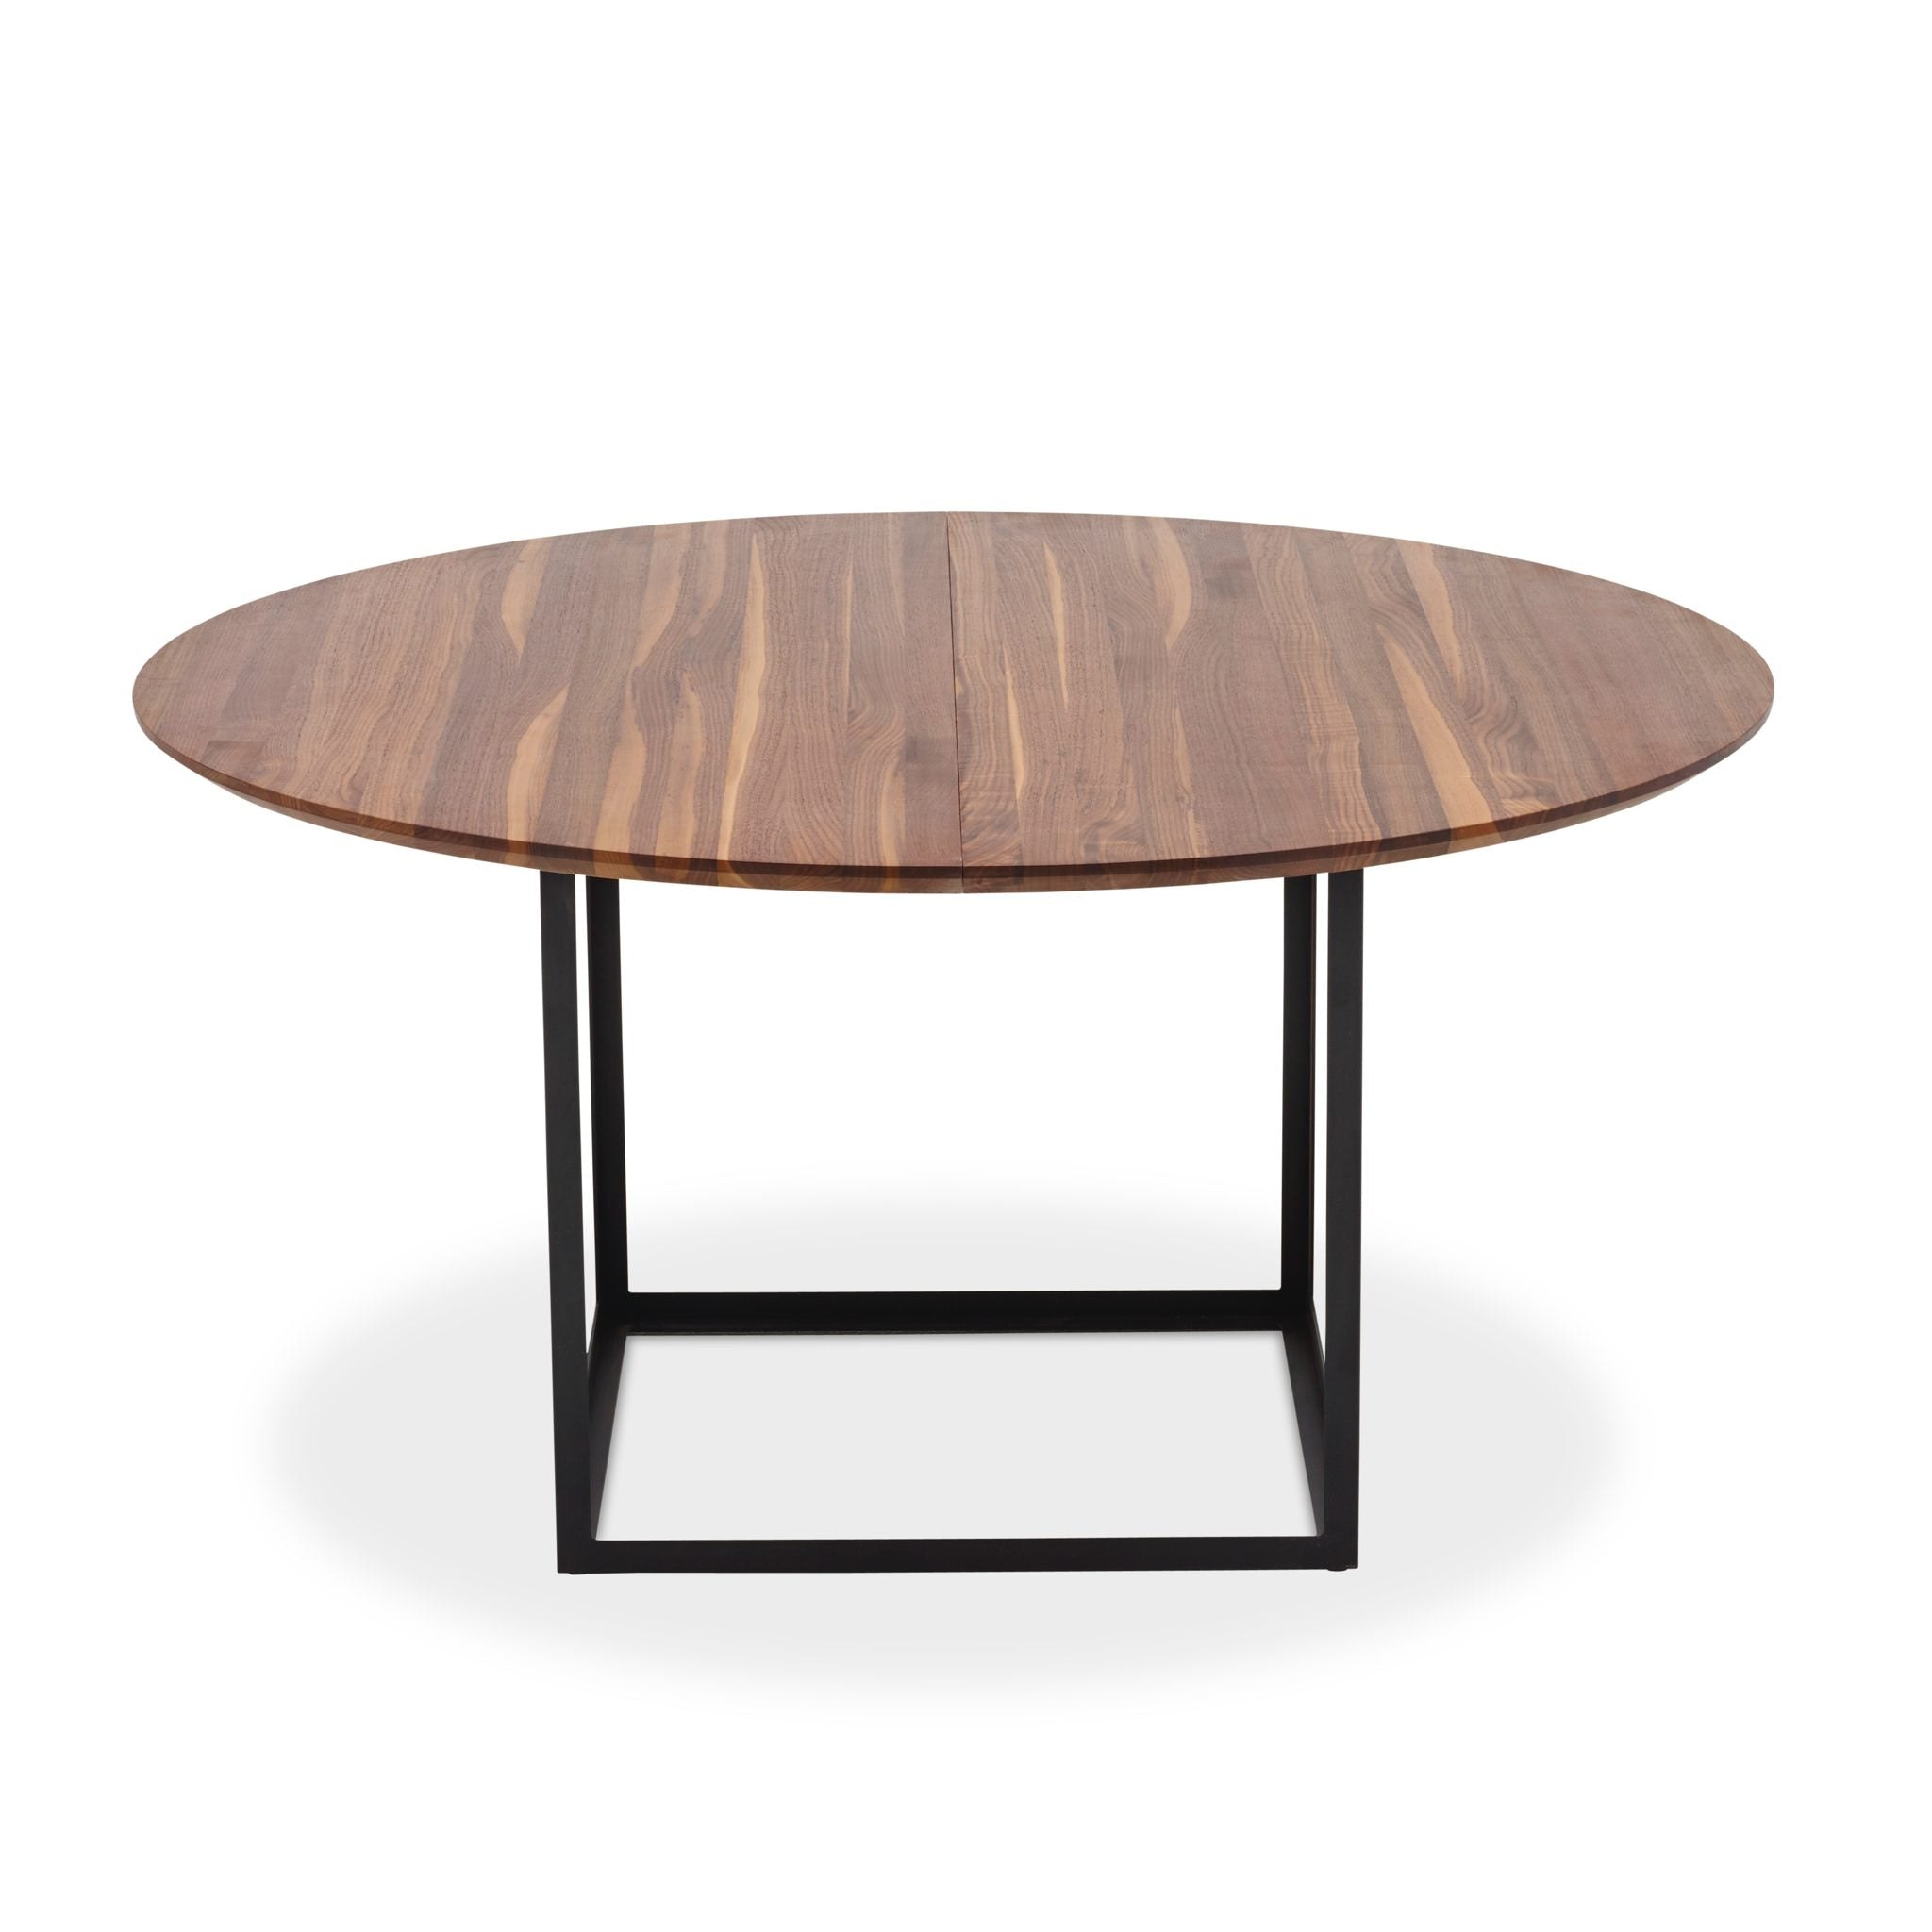 Jewel Table Round by DK3